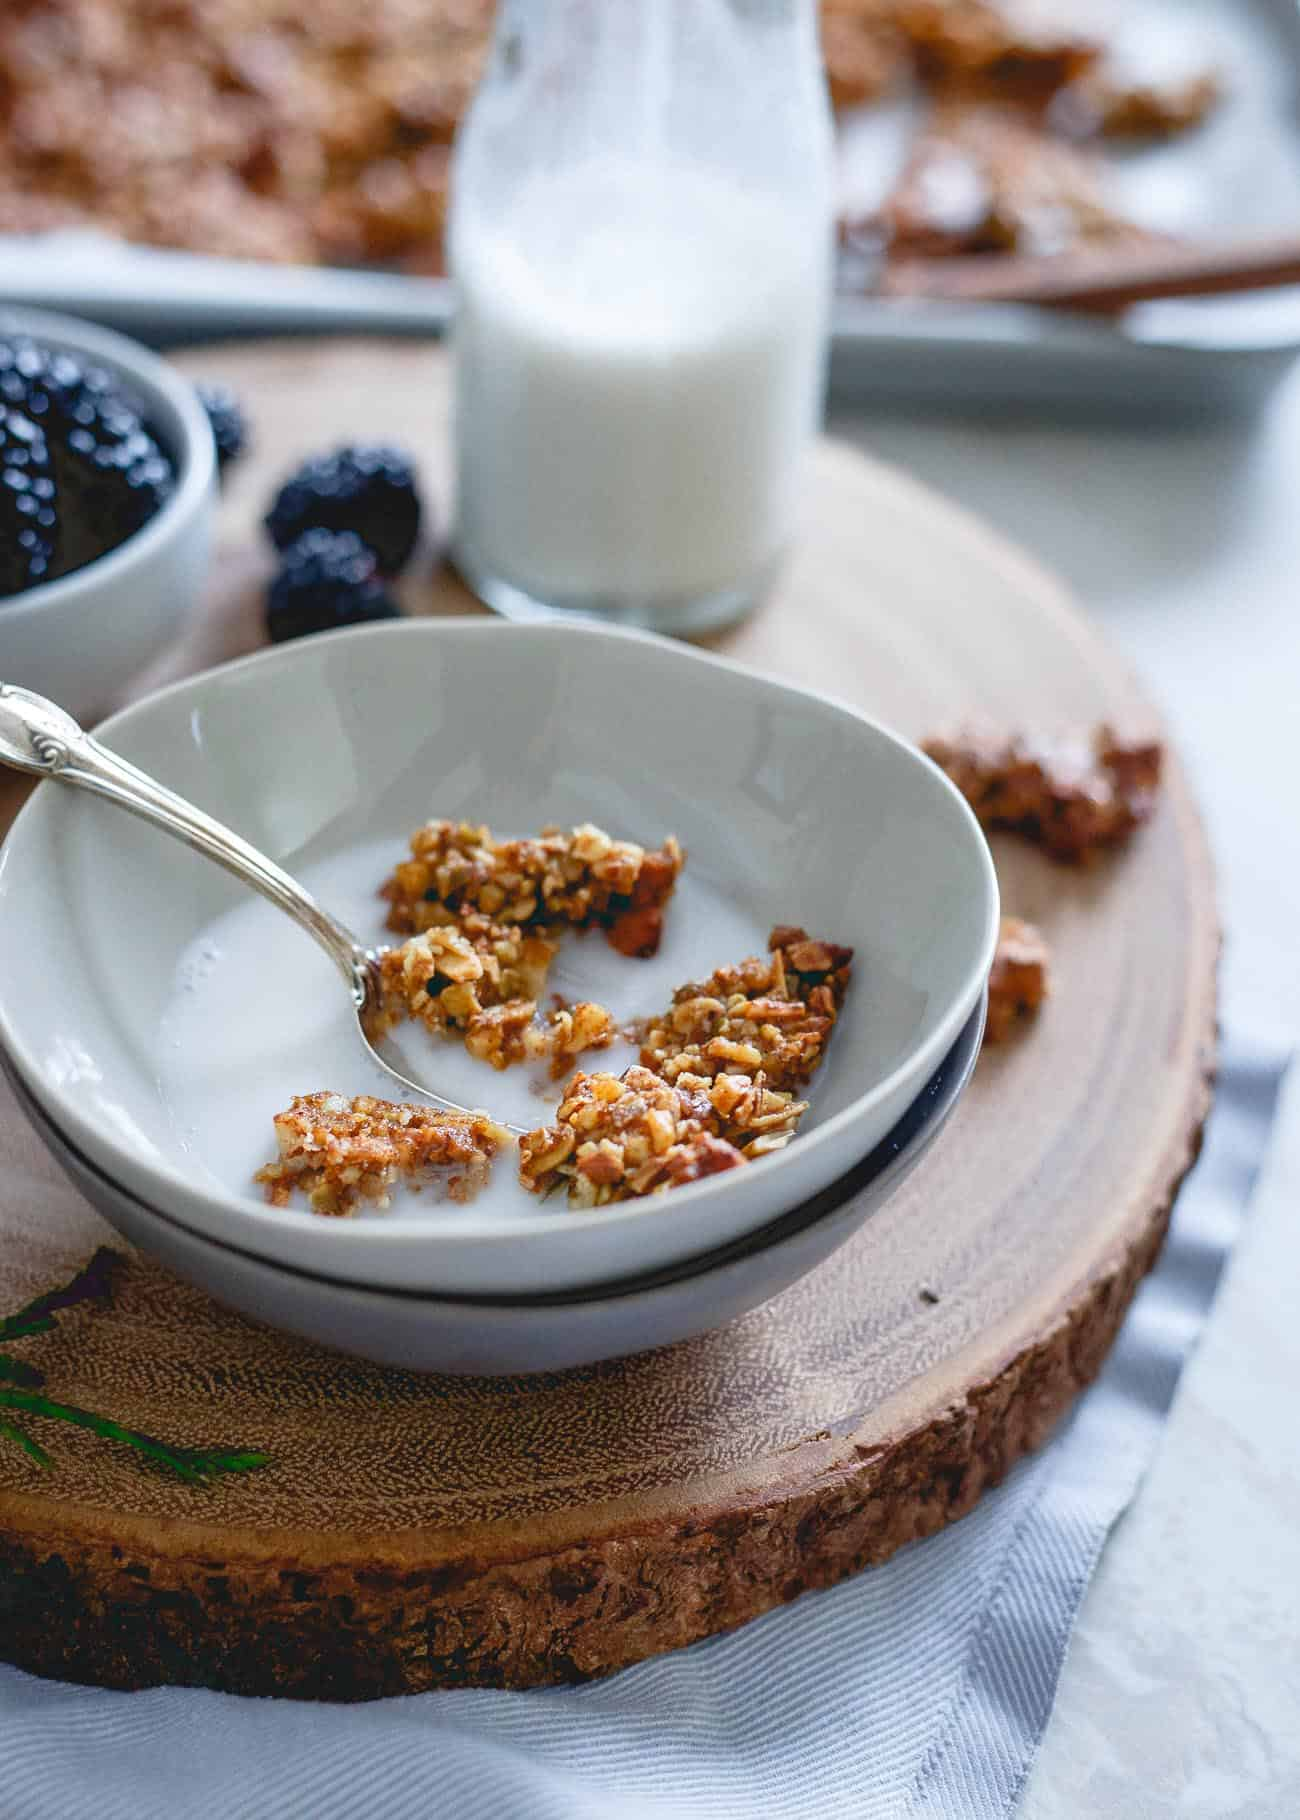 Crunchy, sweet and full of wintertime spices, this gingerbread granola is also paleo friendly and a deliciously festive breakfast or snack.